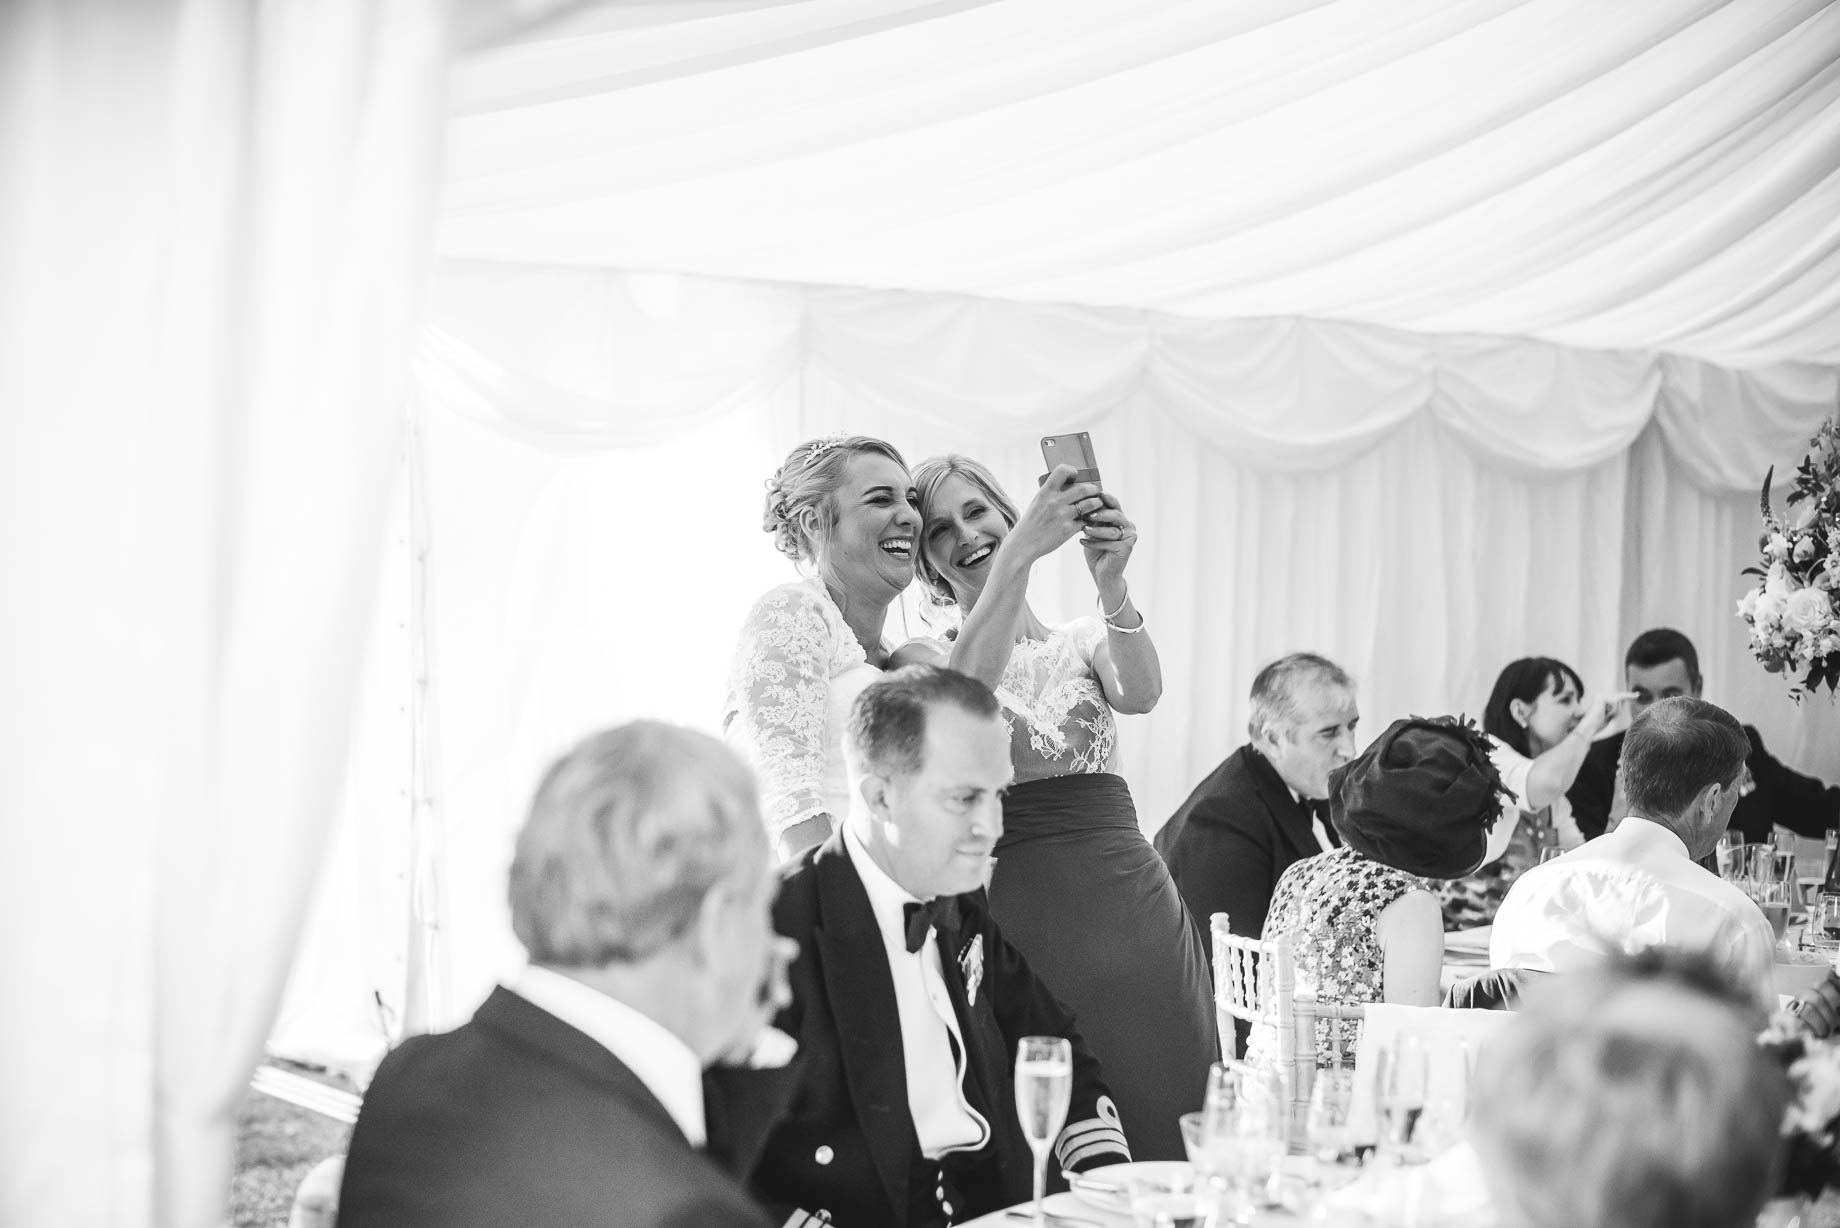 Hampshire wedding photography - Emily and Rob - Guy Collier Photography (146 of 192)